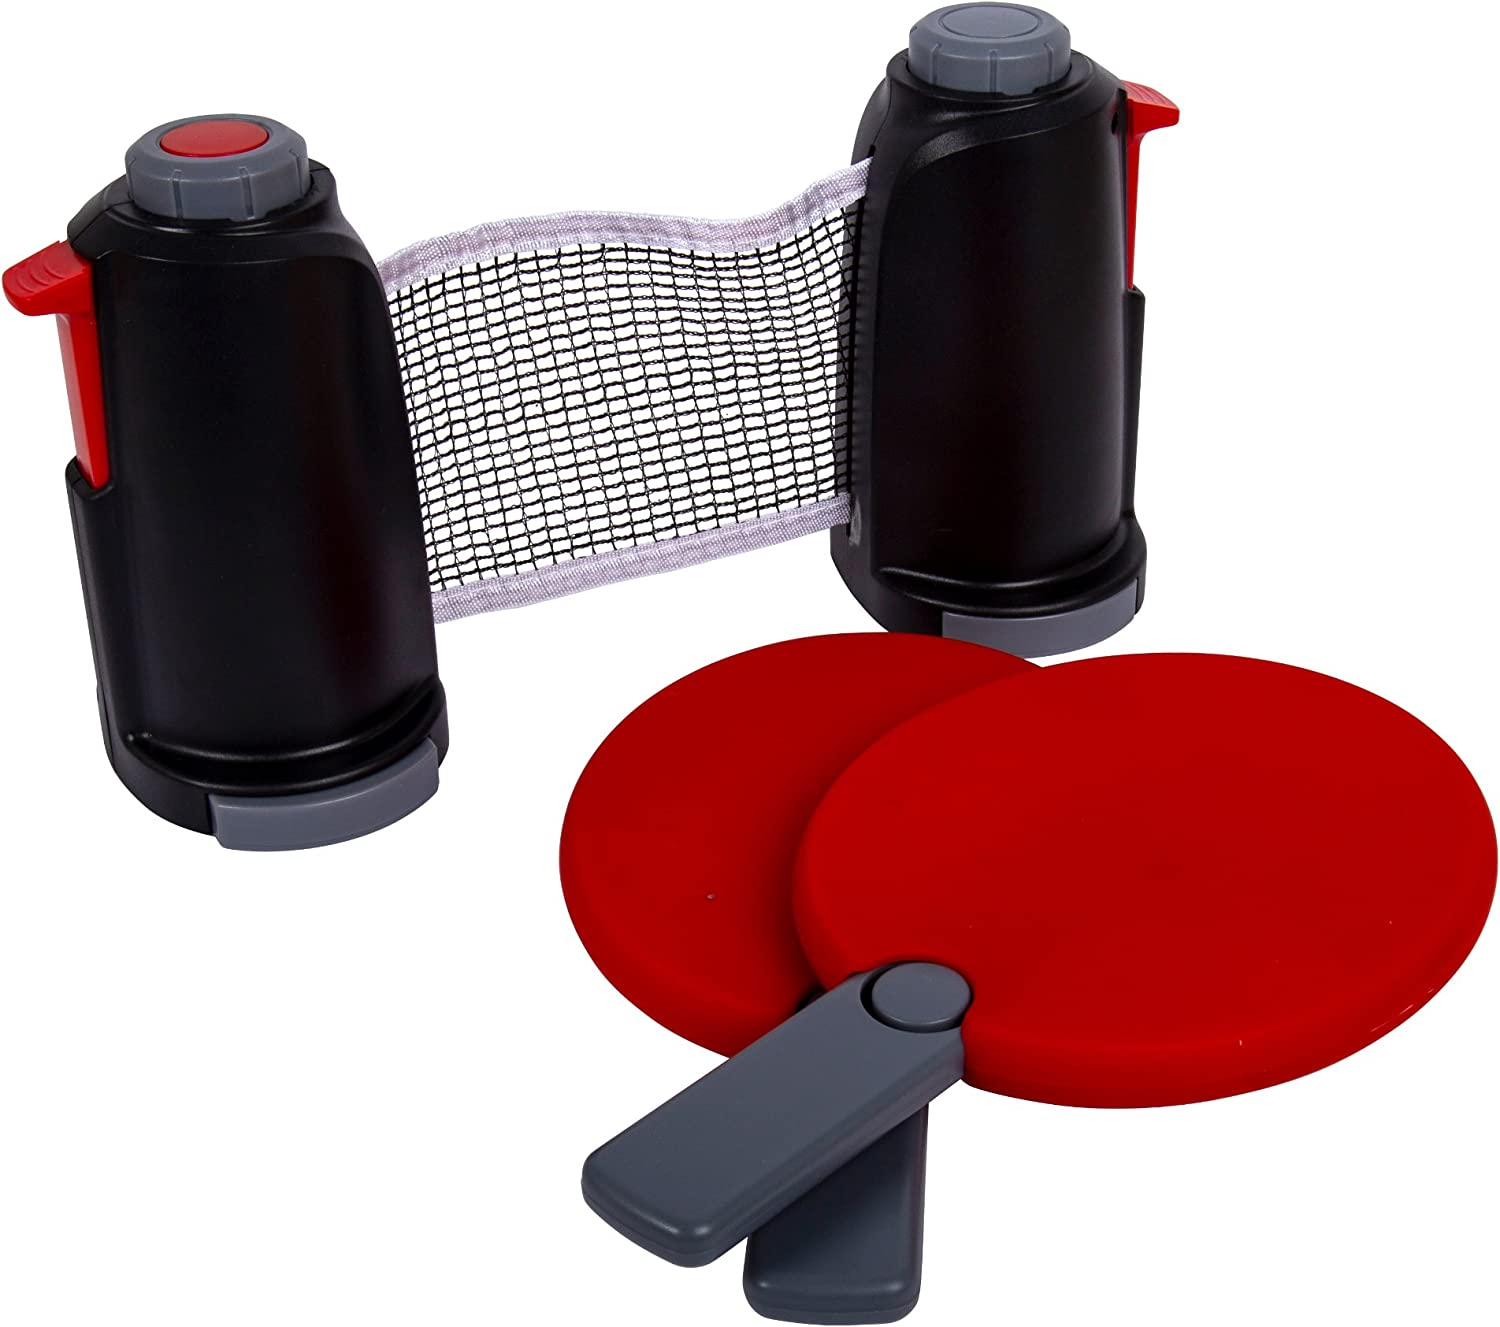 Red ibobby Hover Air Hockey 10 inches